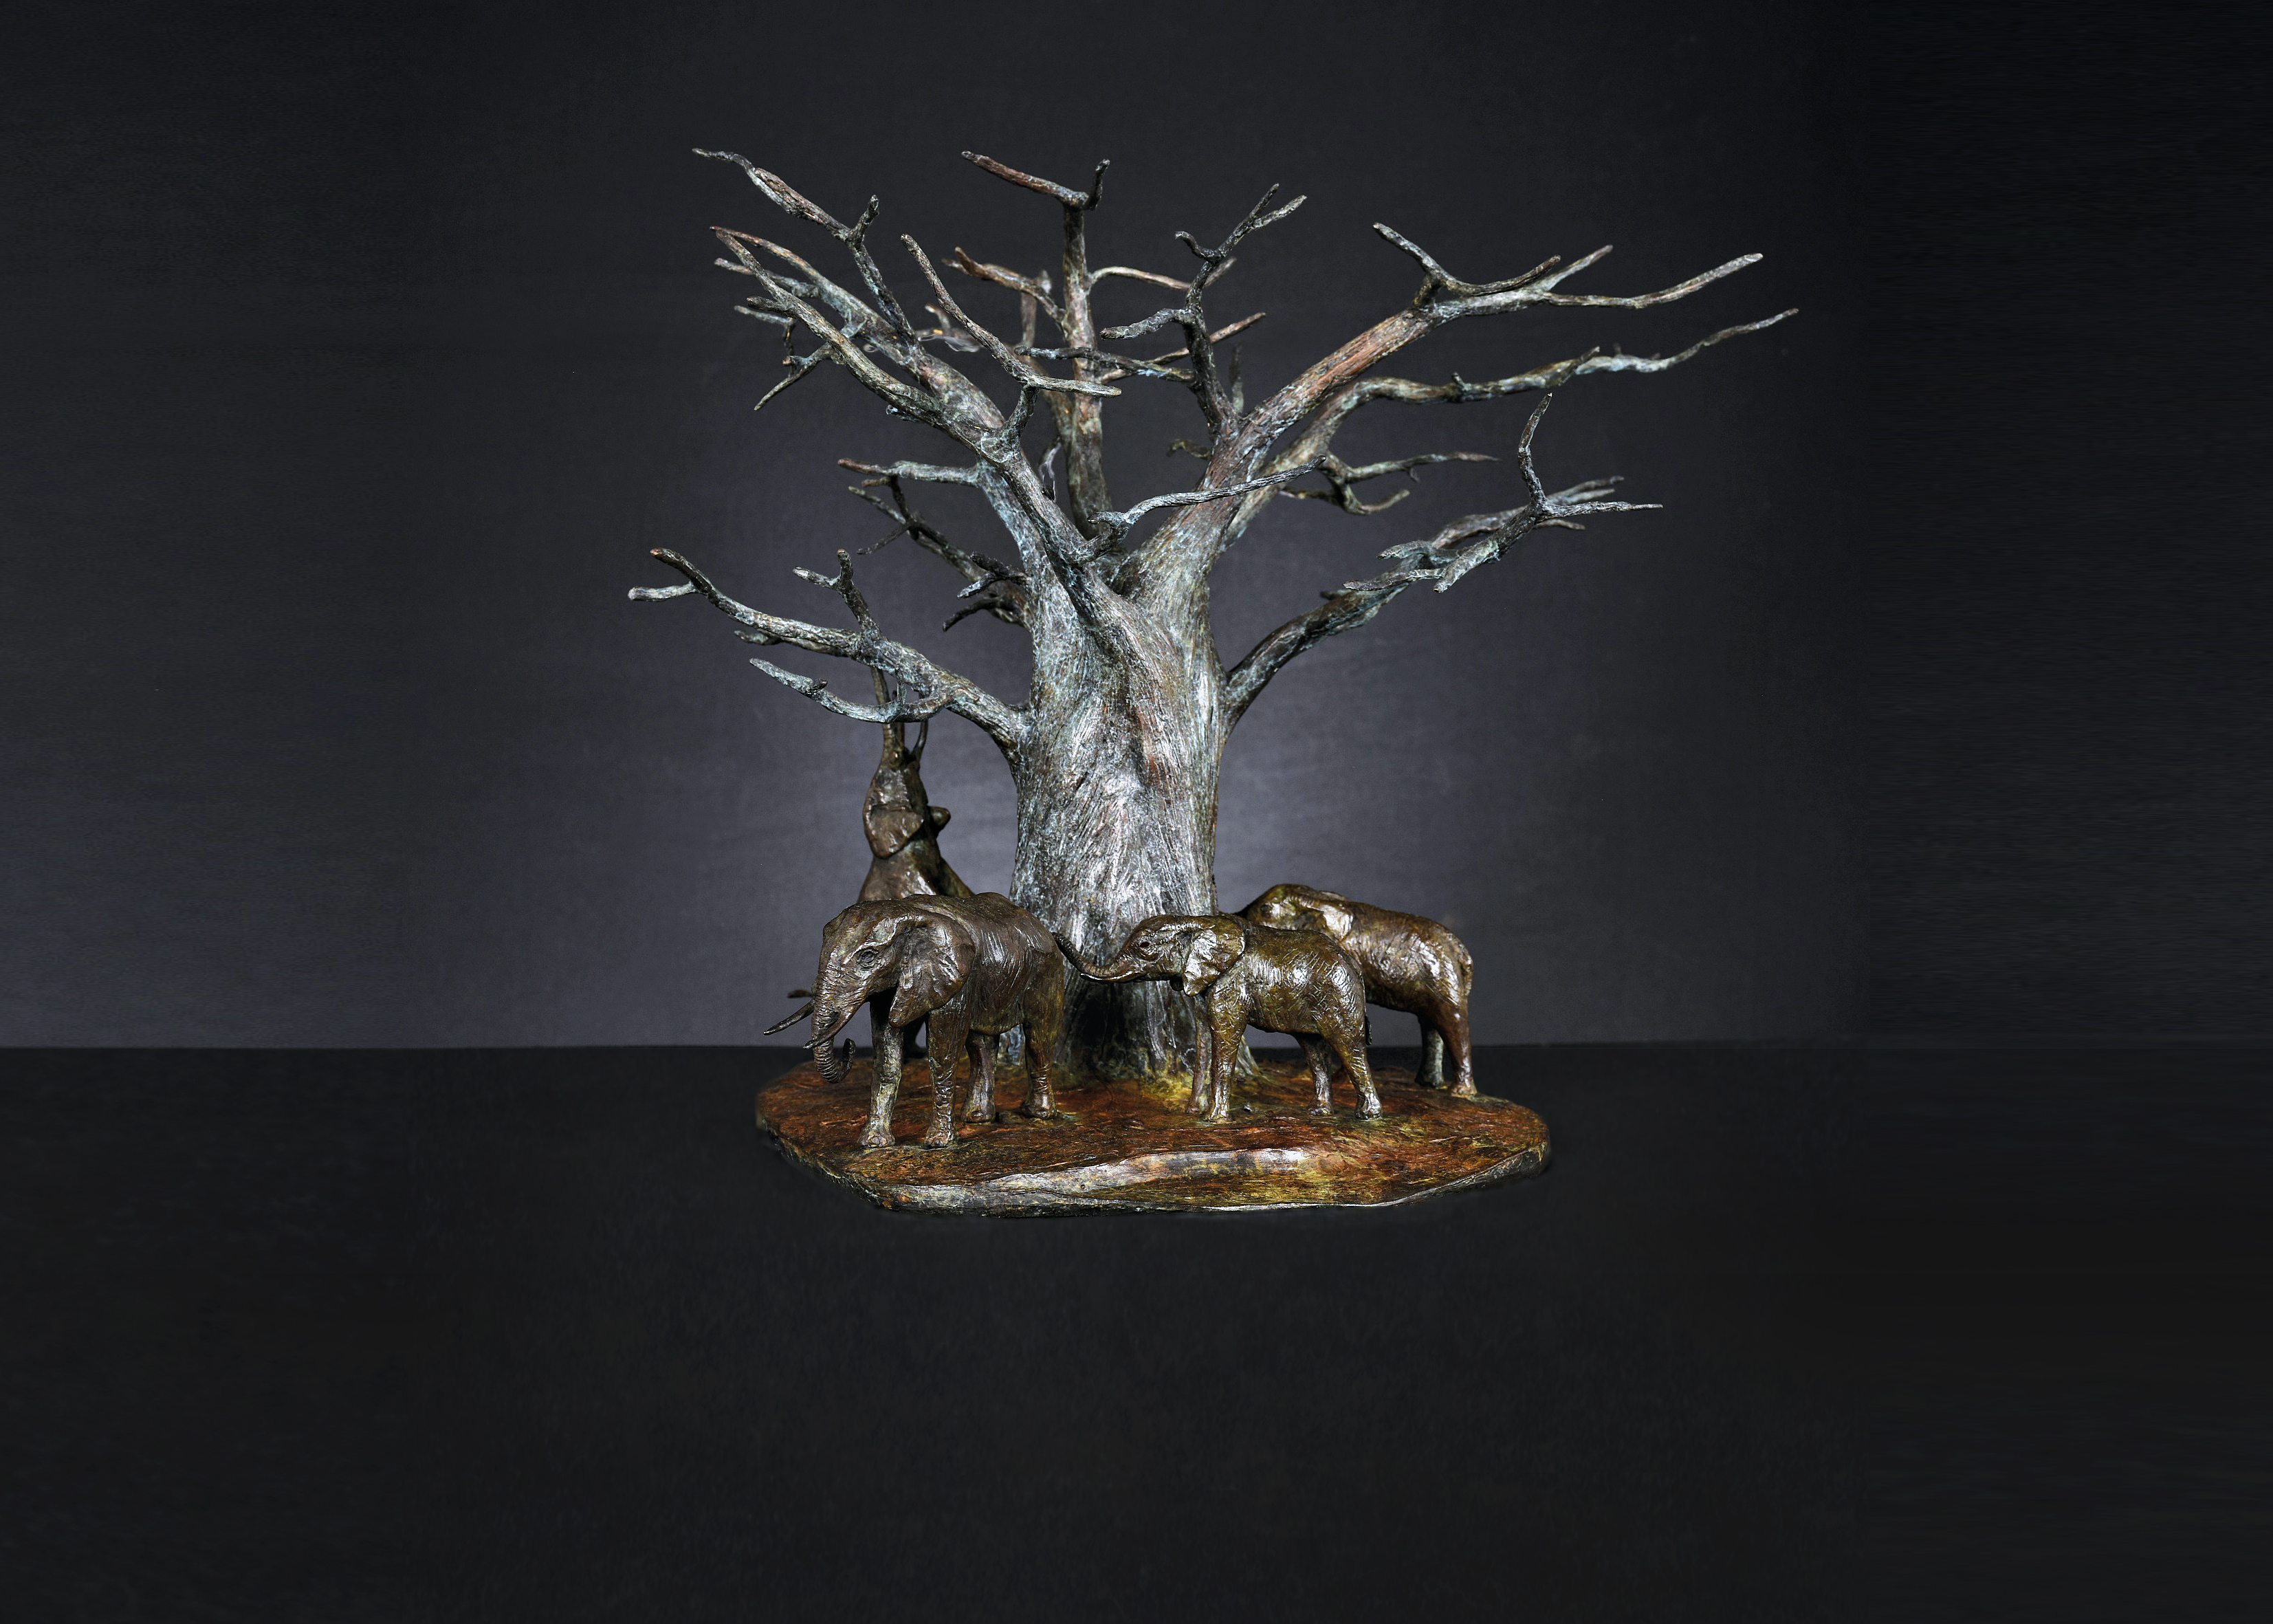 Bruce Little, bronze sculpture of a elephants around a Baobab tree